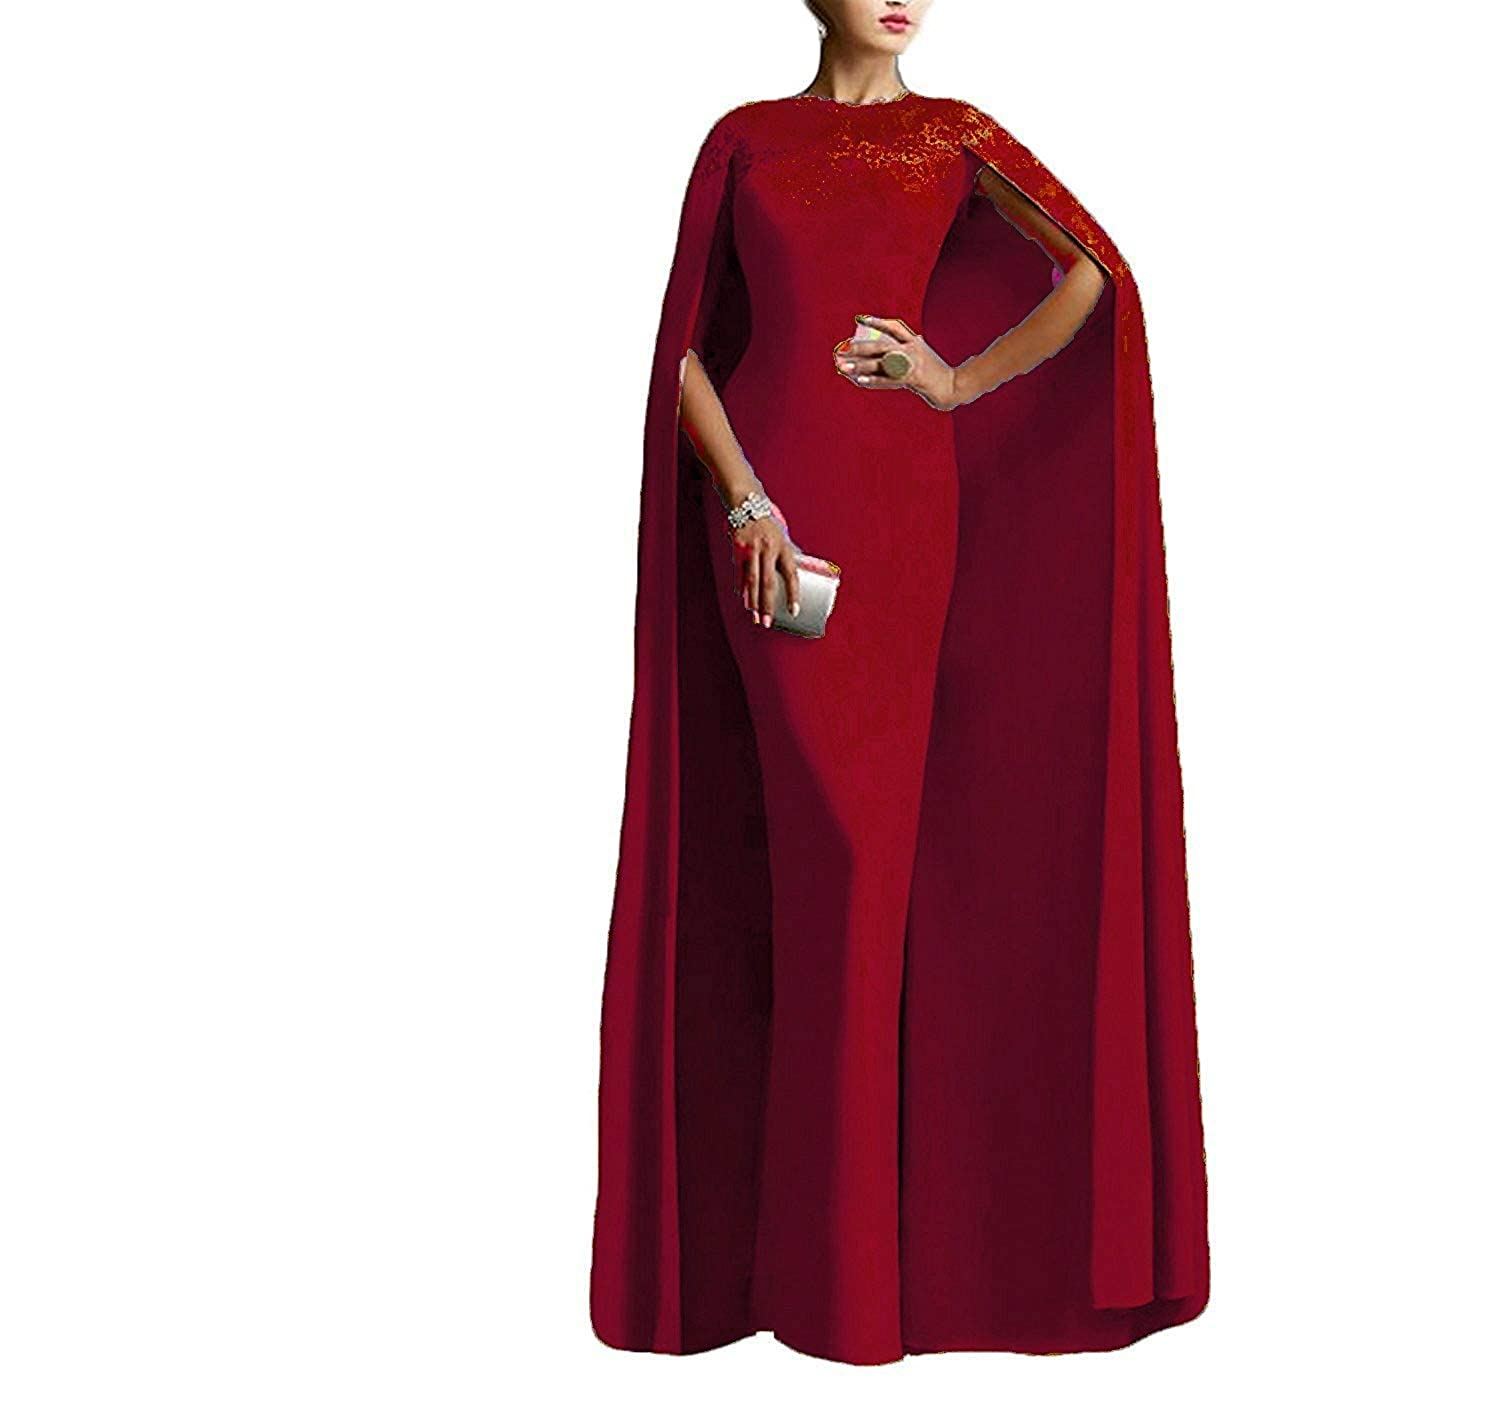 Burgundy LiBridal Women's Mermaid Prom Evening Party Dress Long Formal Gowns with Cape